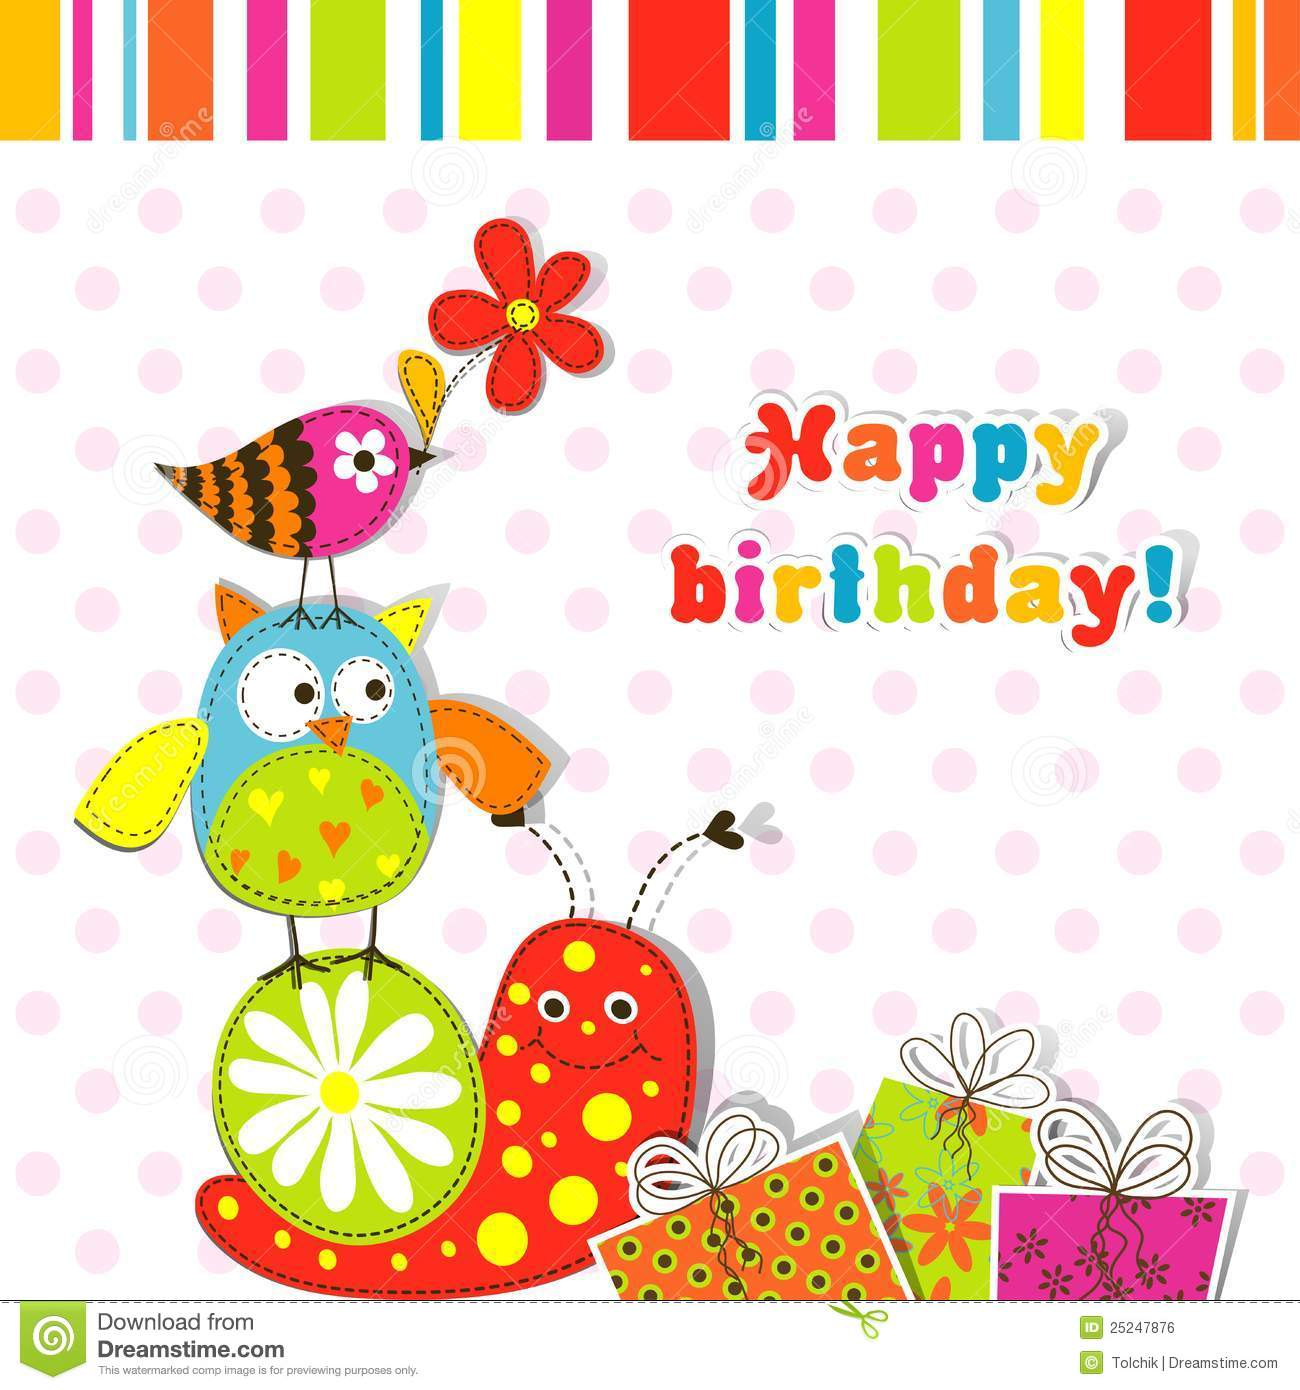 birthday card design template ; free-birthday-card-templates-cute-colorful-background-completing-simple-elegant-stunning-model-adding-by-awesome-design-looked-so-sweet-and-cool